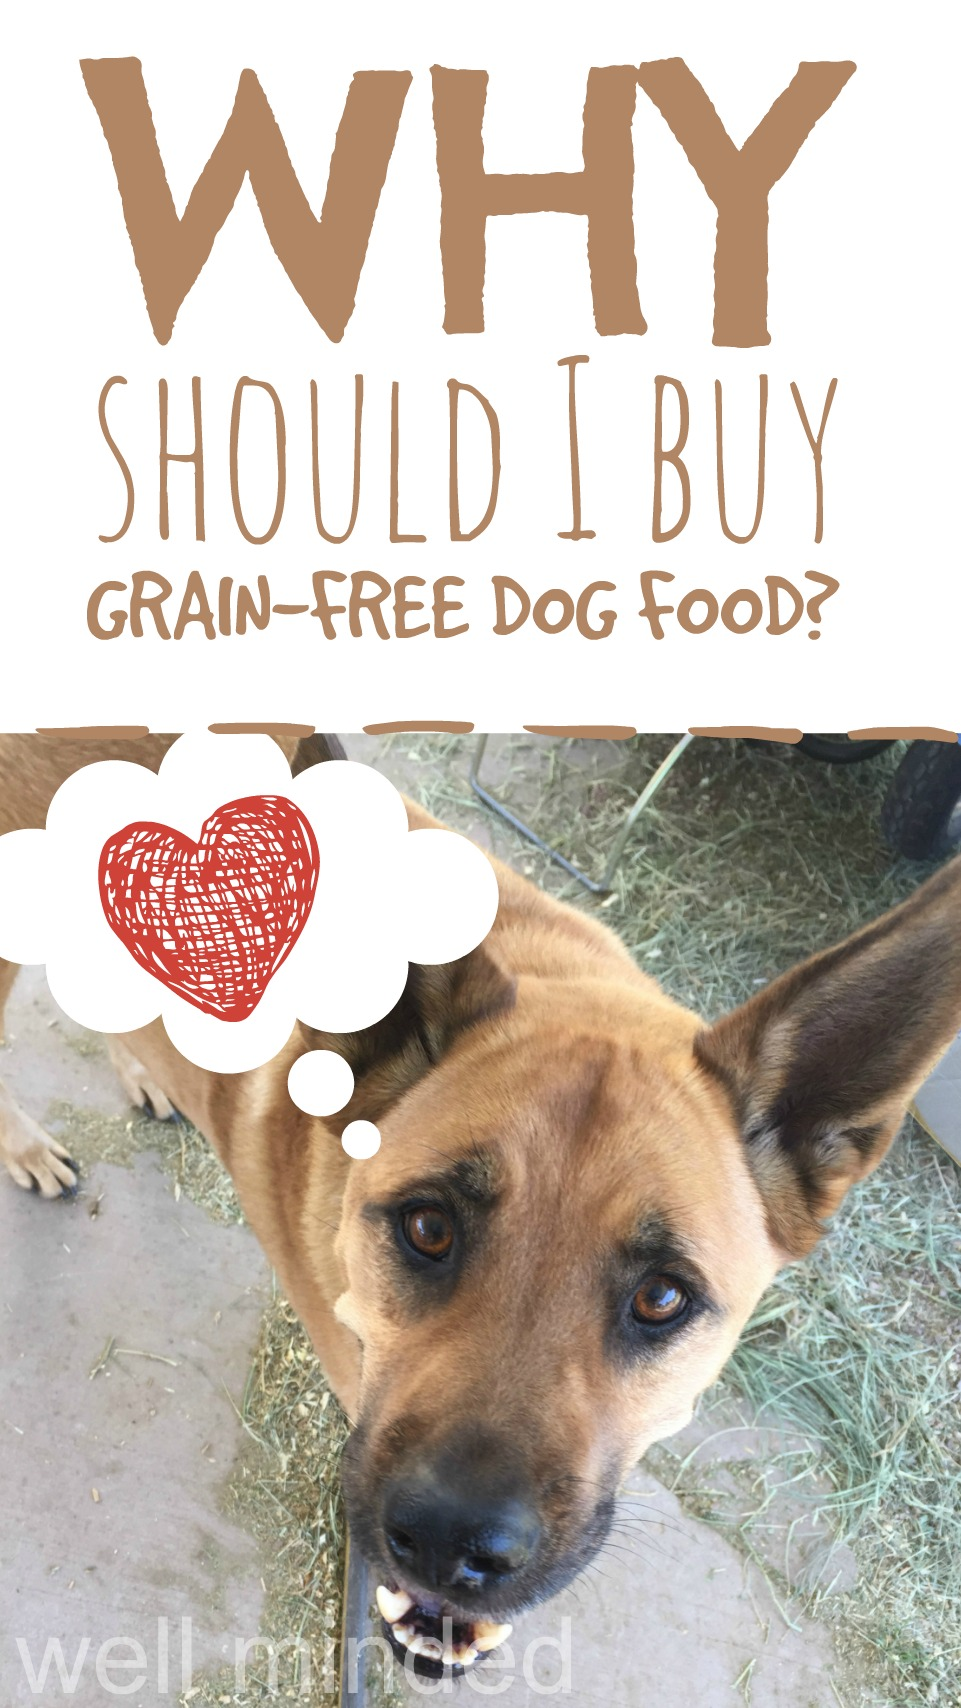 Why should I buy grain-free dog food?–Well Minded